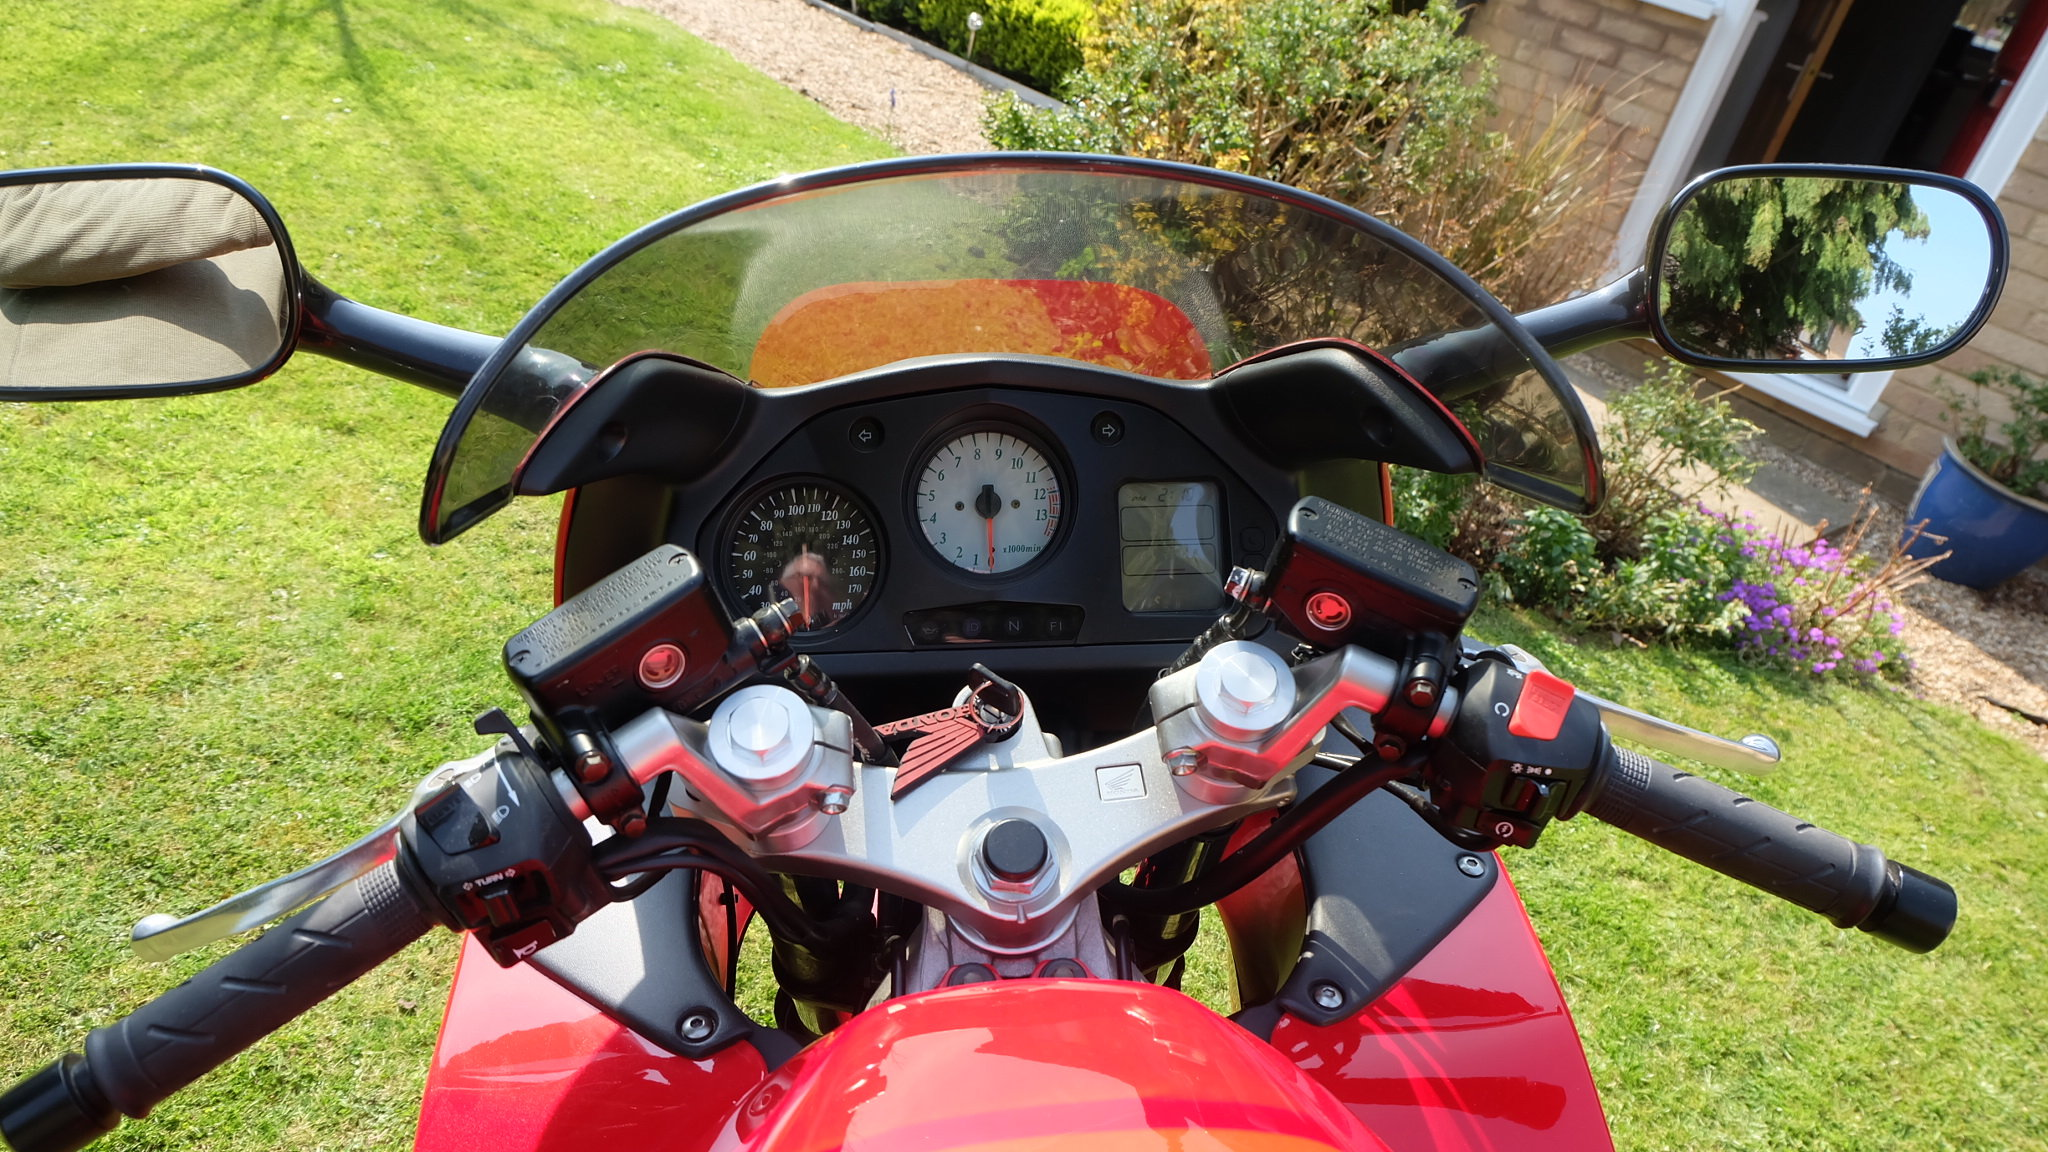 1998 Honda VFR 800 fiw 1,788 miles only  For Sale (picture 4 of 6)